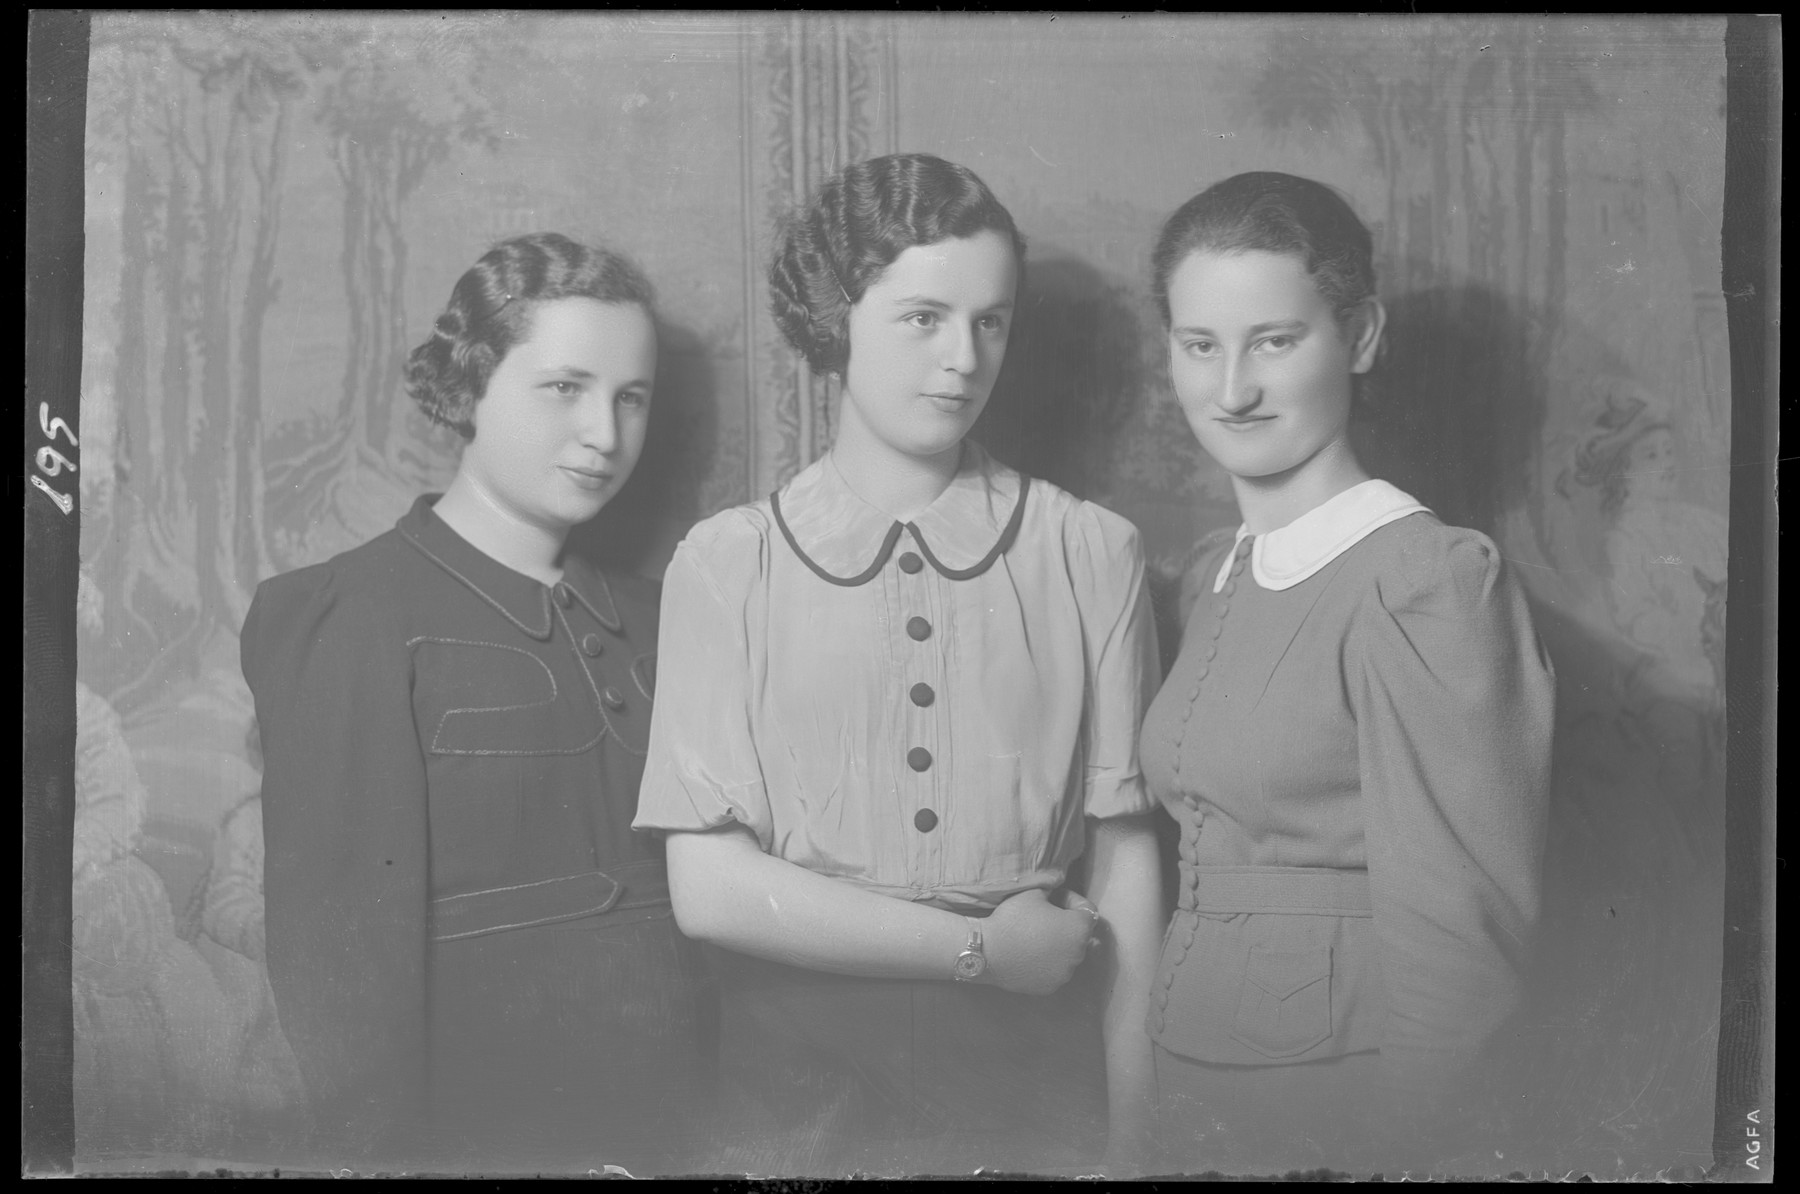 Studio portrait of three young women, including Frida Fried